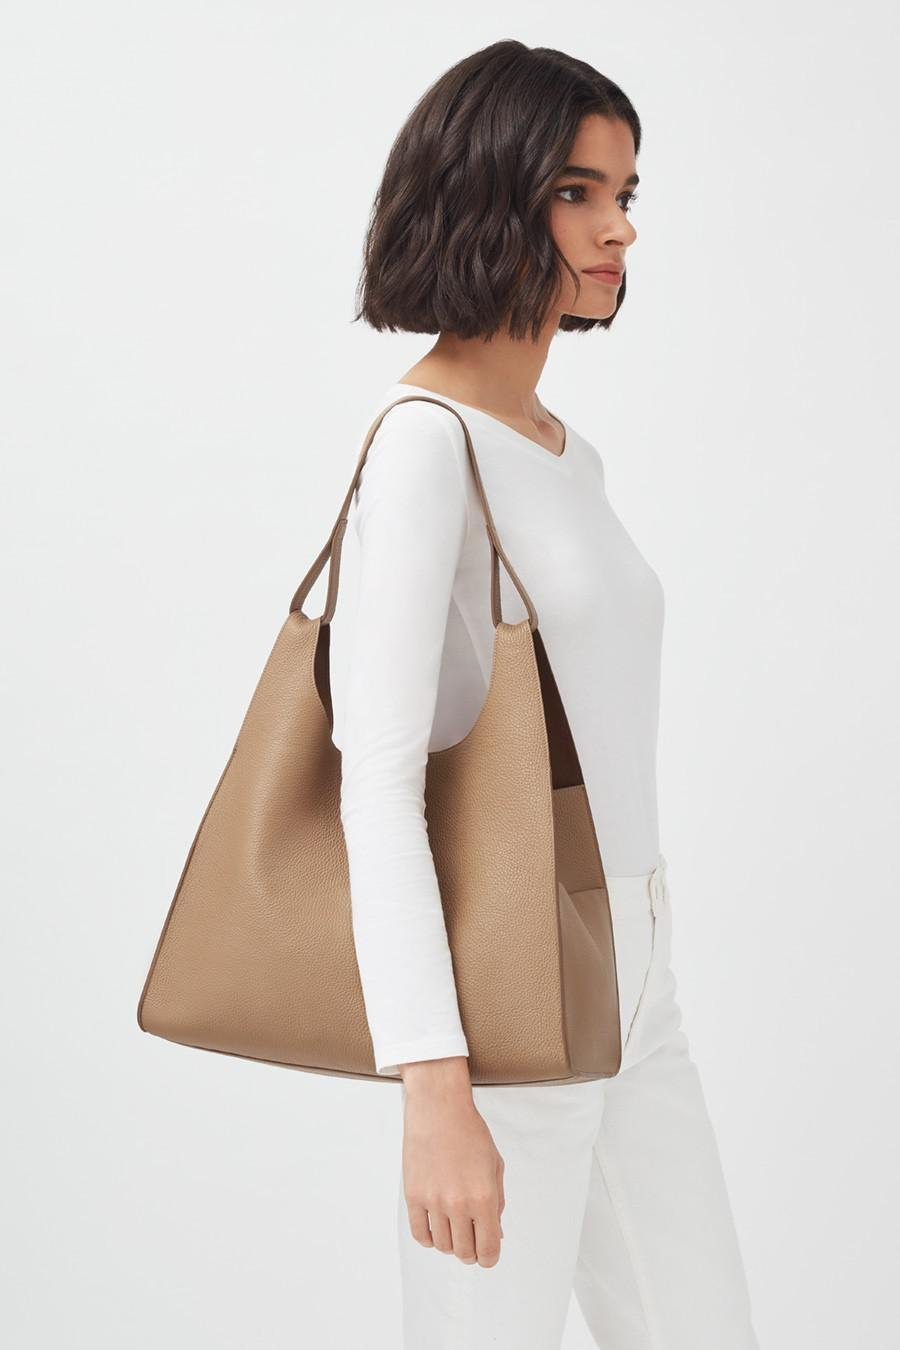 Women's Oversized Double Loop Bag in Cappuccino | Pebbled Leather by Cuyana 5